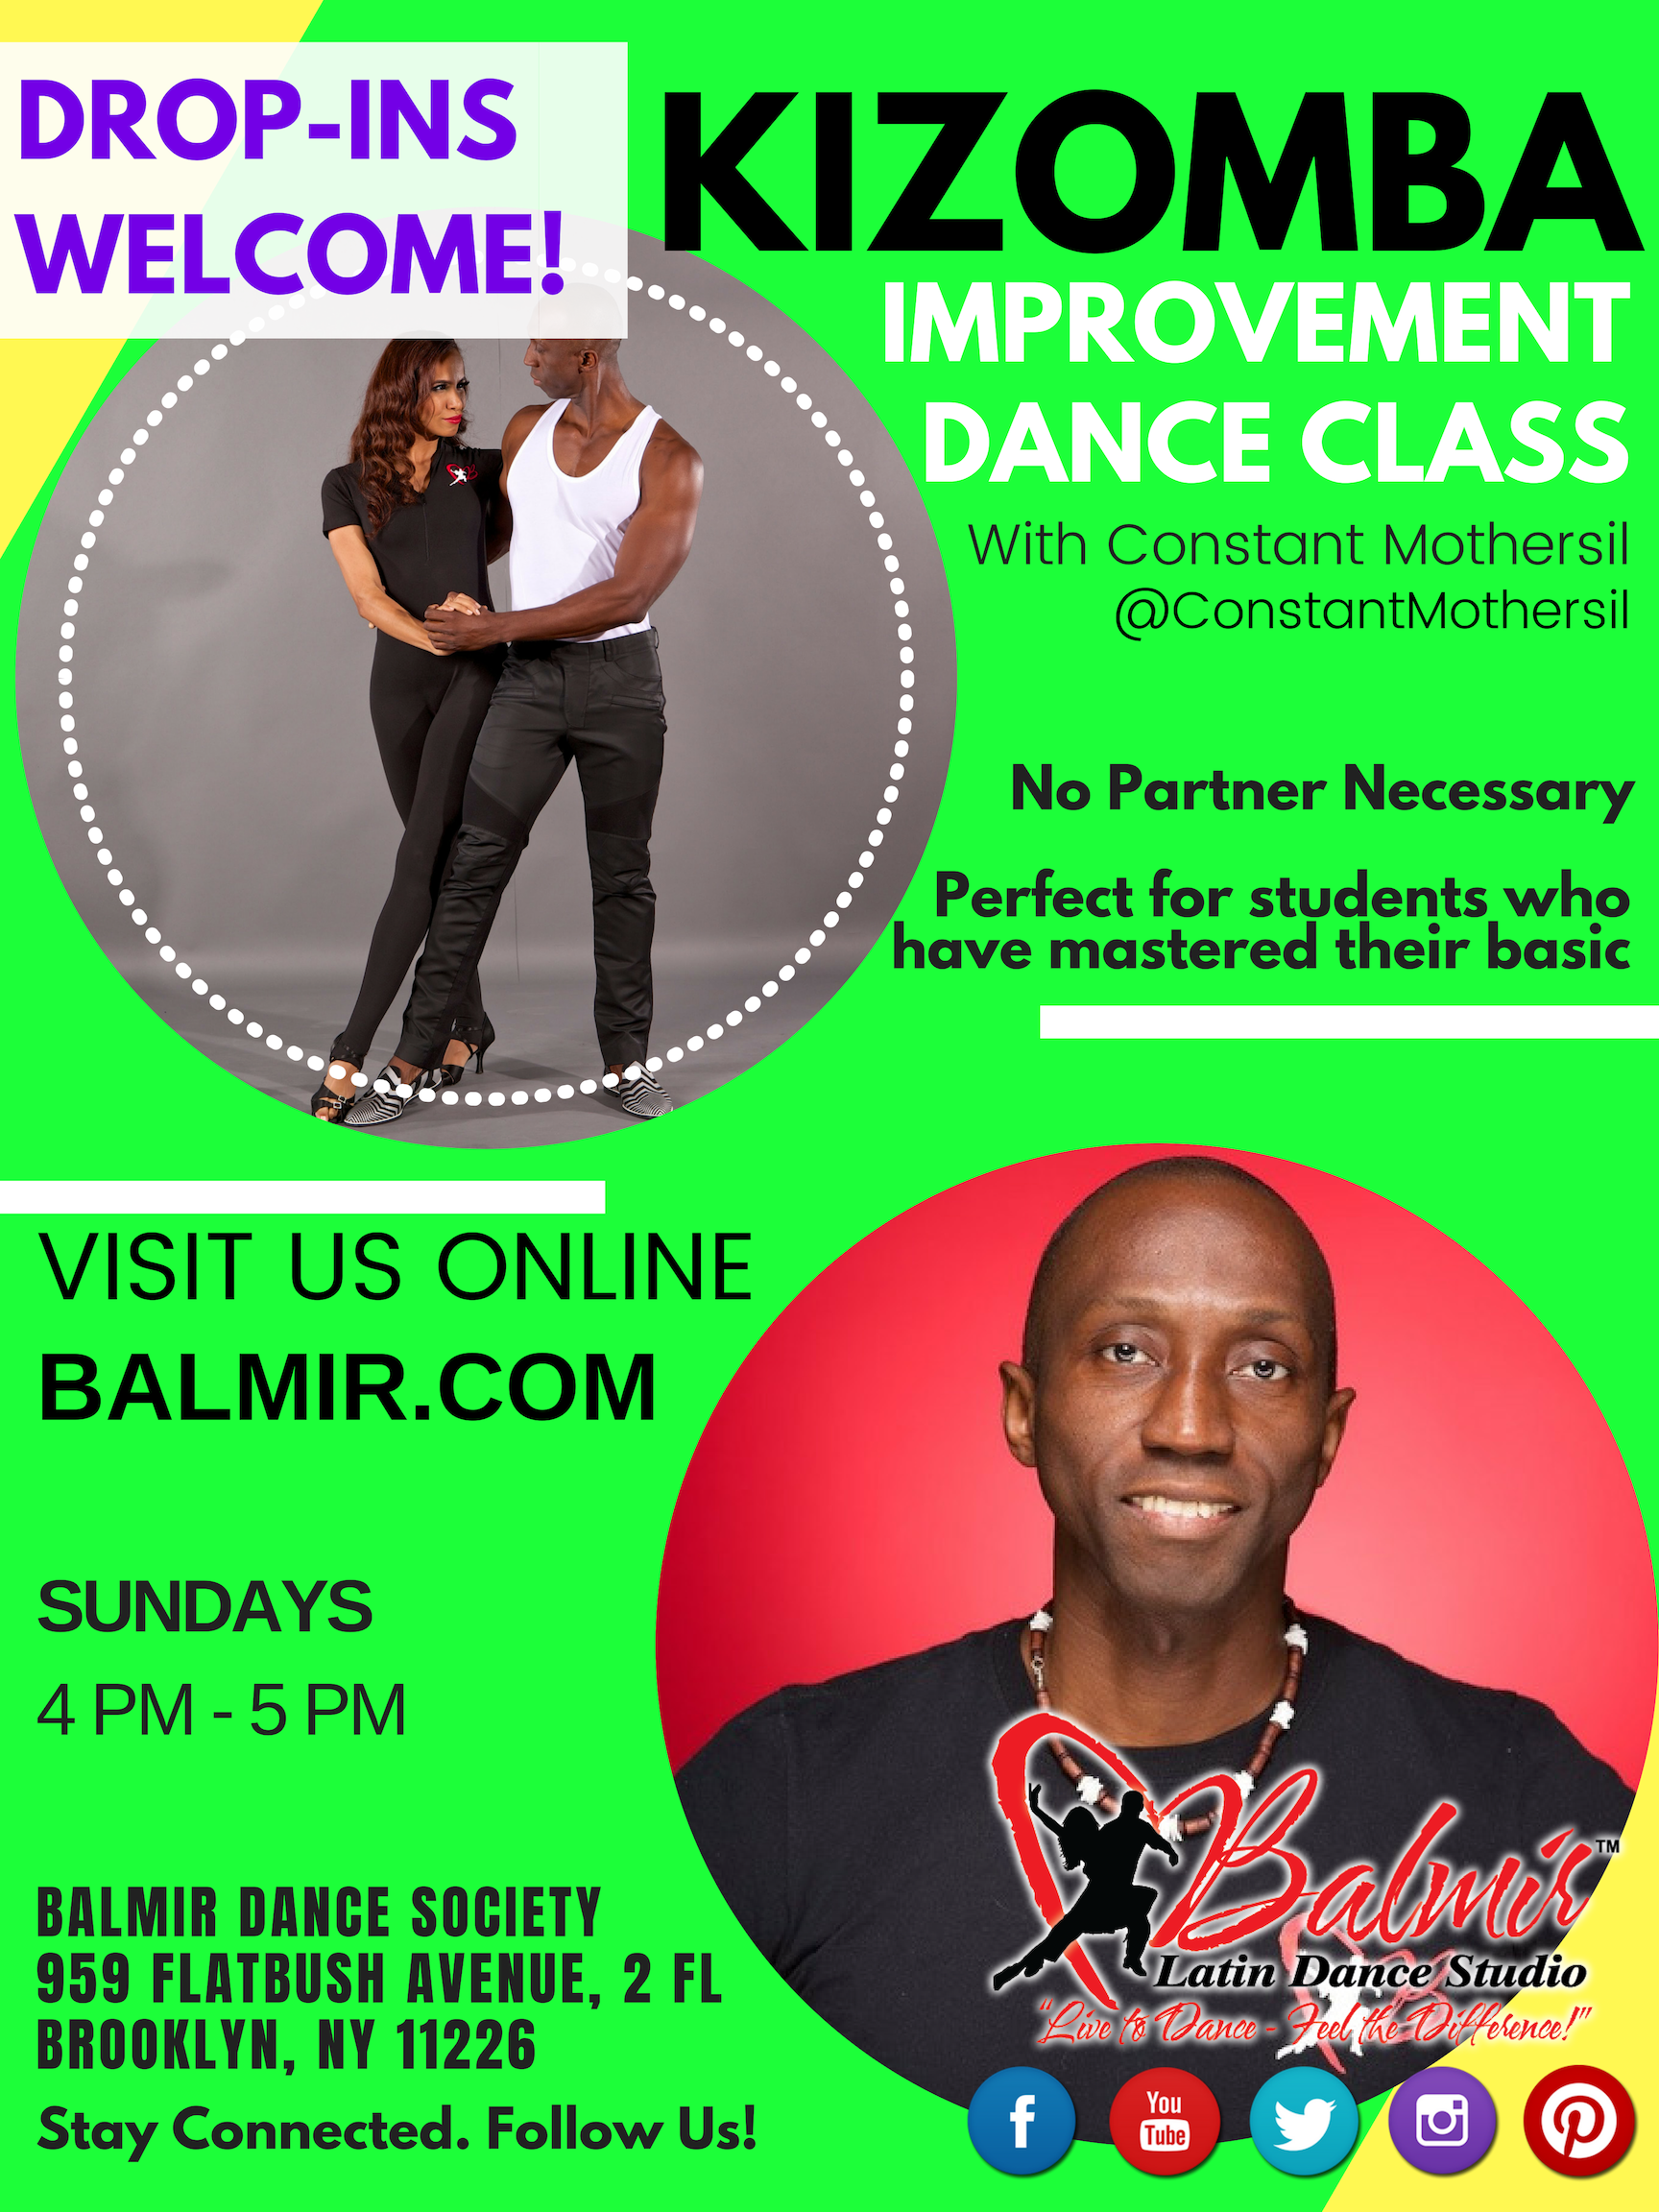 Kizomba Improvement Classes Beginner Brooklyn Dance Classes Balmir NYC Lessons.png